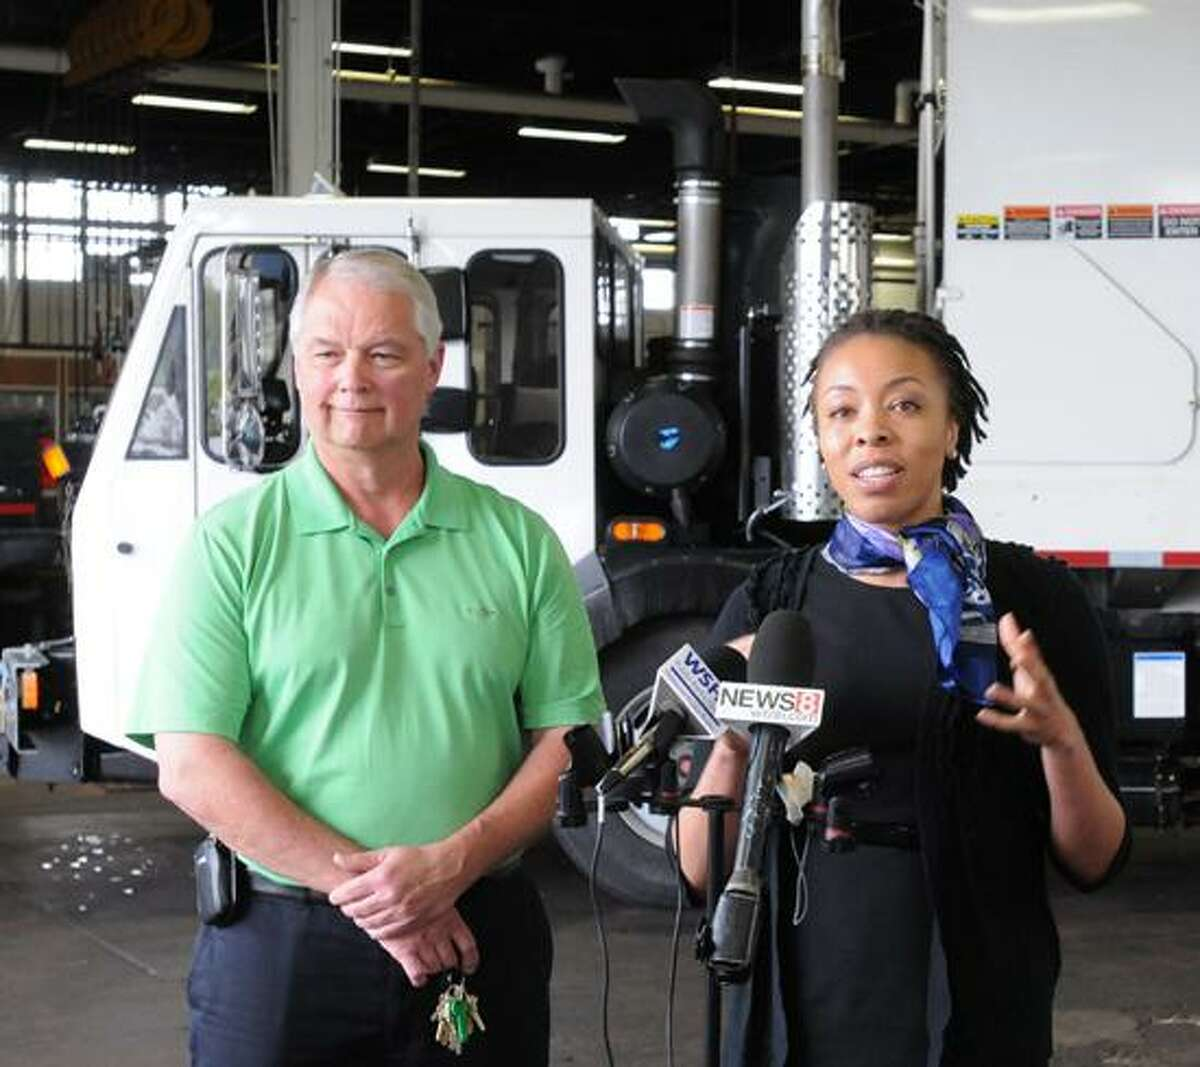 John Prokop, director of the New Haven Public Works Department, left, and Dr. Chisara N. Asomugha, city of New Haven community services administrator, right, unveiled six trucks retrofitted with diesel exhaust filters during a press conference at DPW headquarters Tuesday. The new filters will result in a 95 percent reduction in particulate emissions, a contributor to asthma. The diesel exhaust filters are shown on a truck at rear. Peter Hvizdak/ New Haven Register